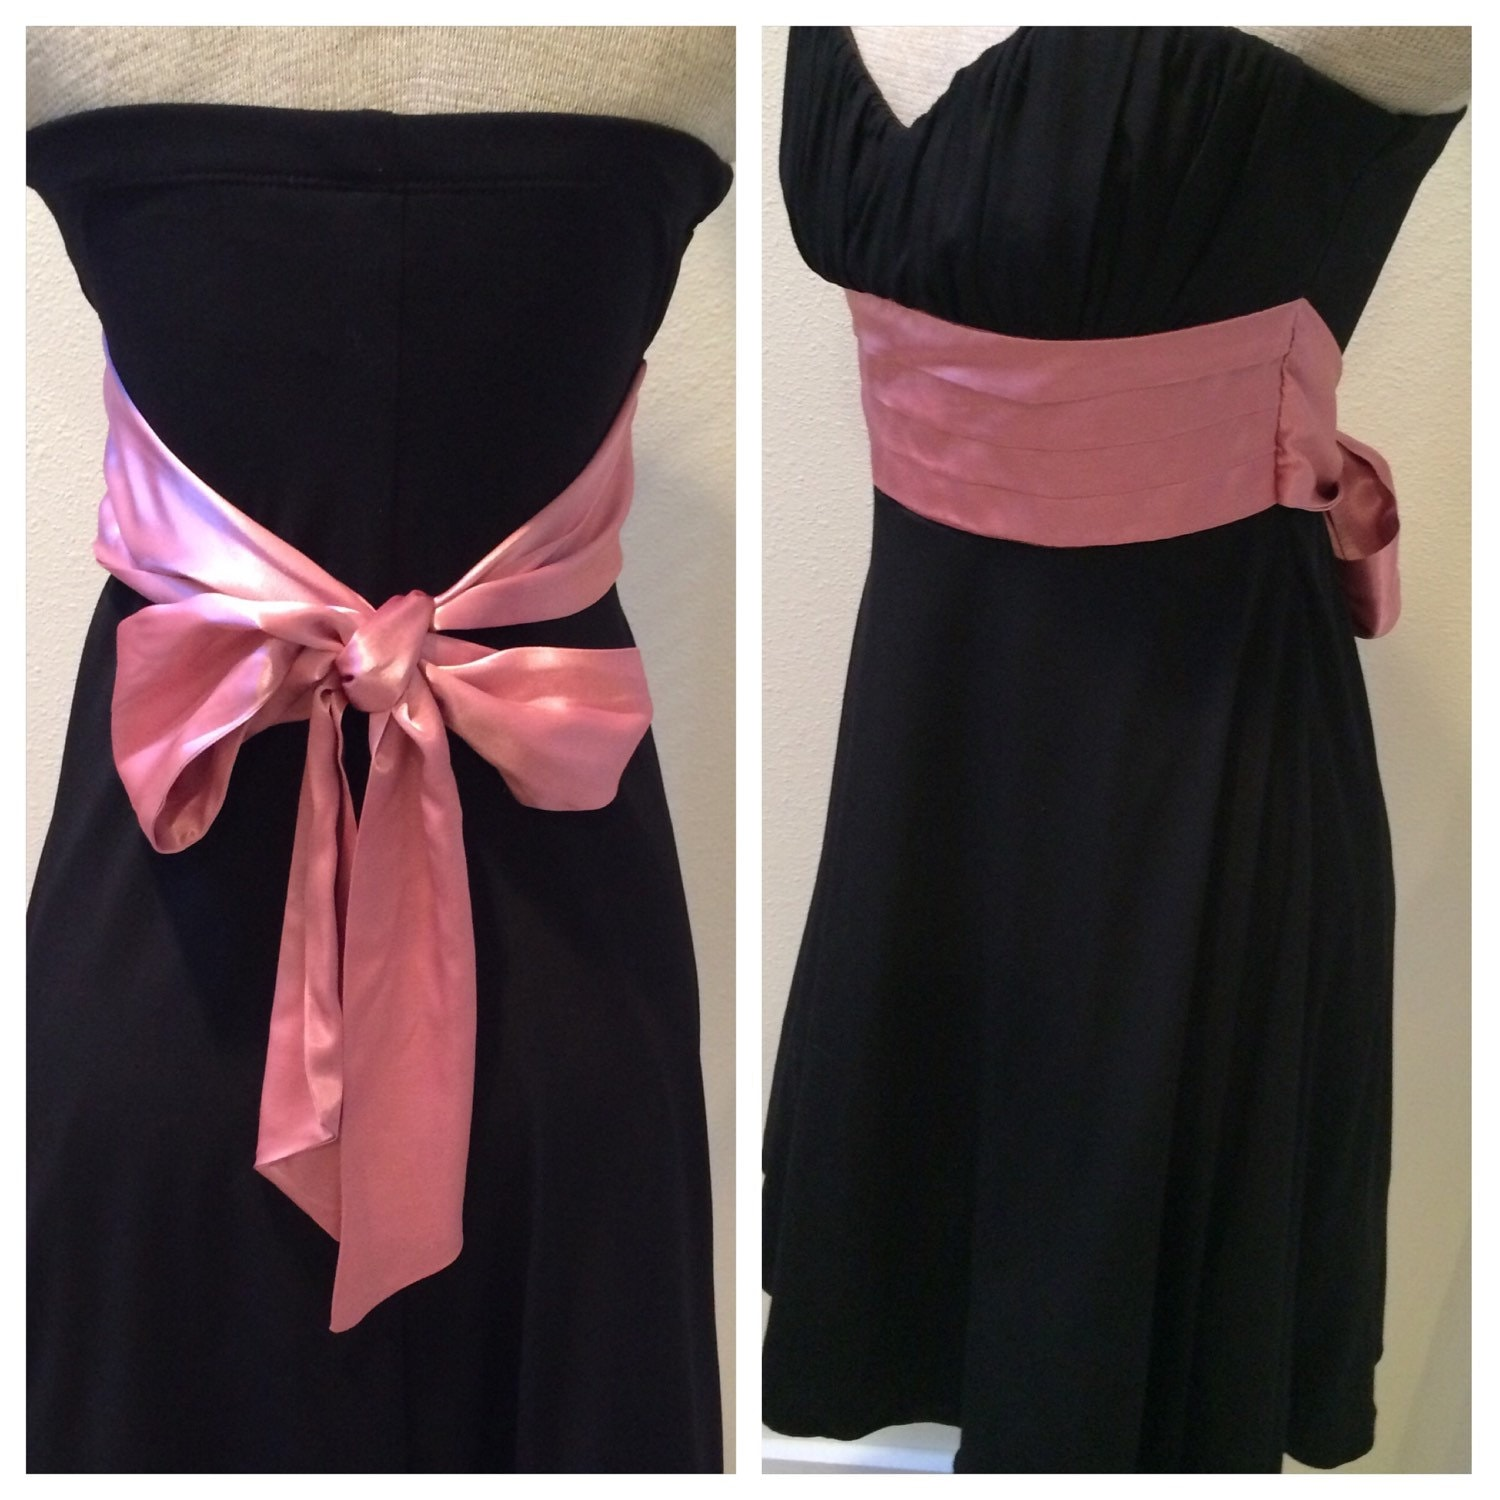 black sleeveless with pink sash belt dress by speechless